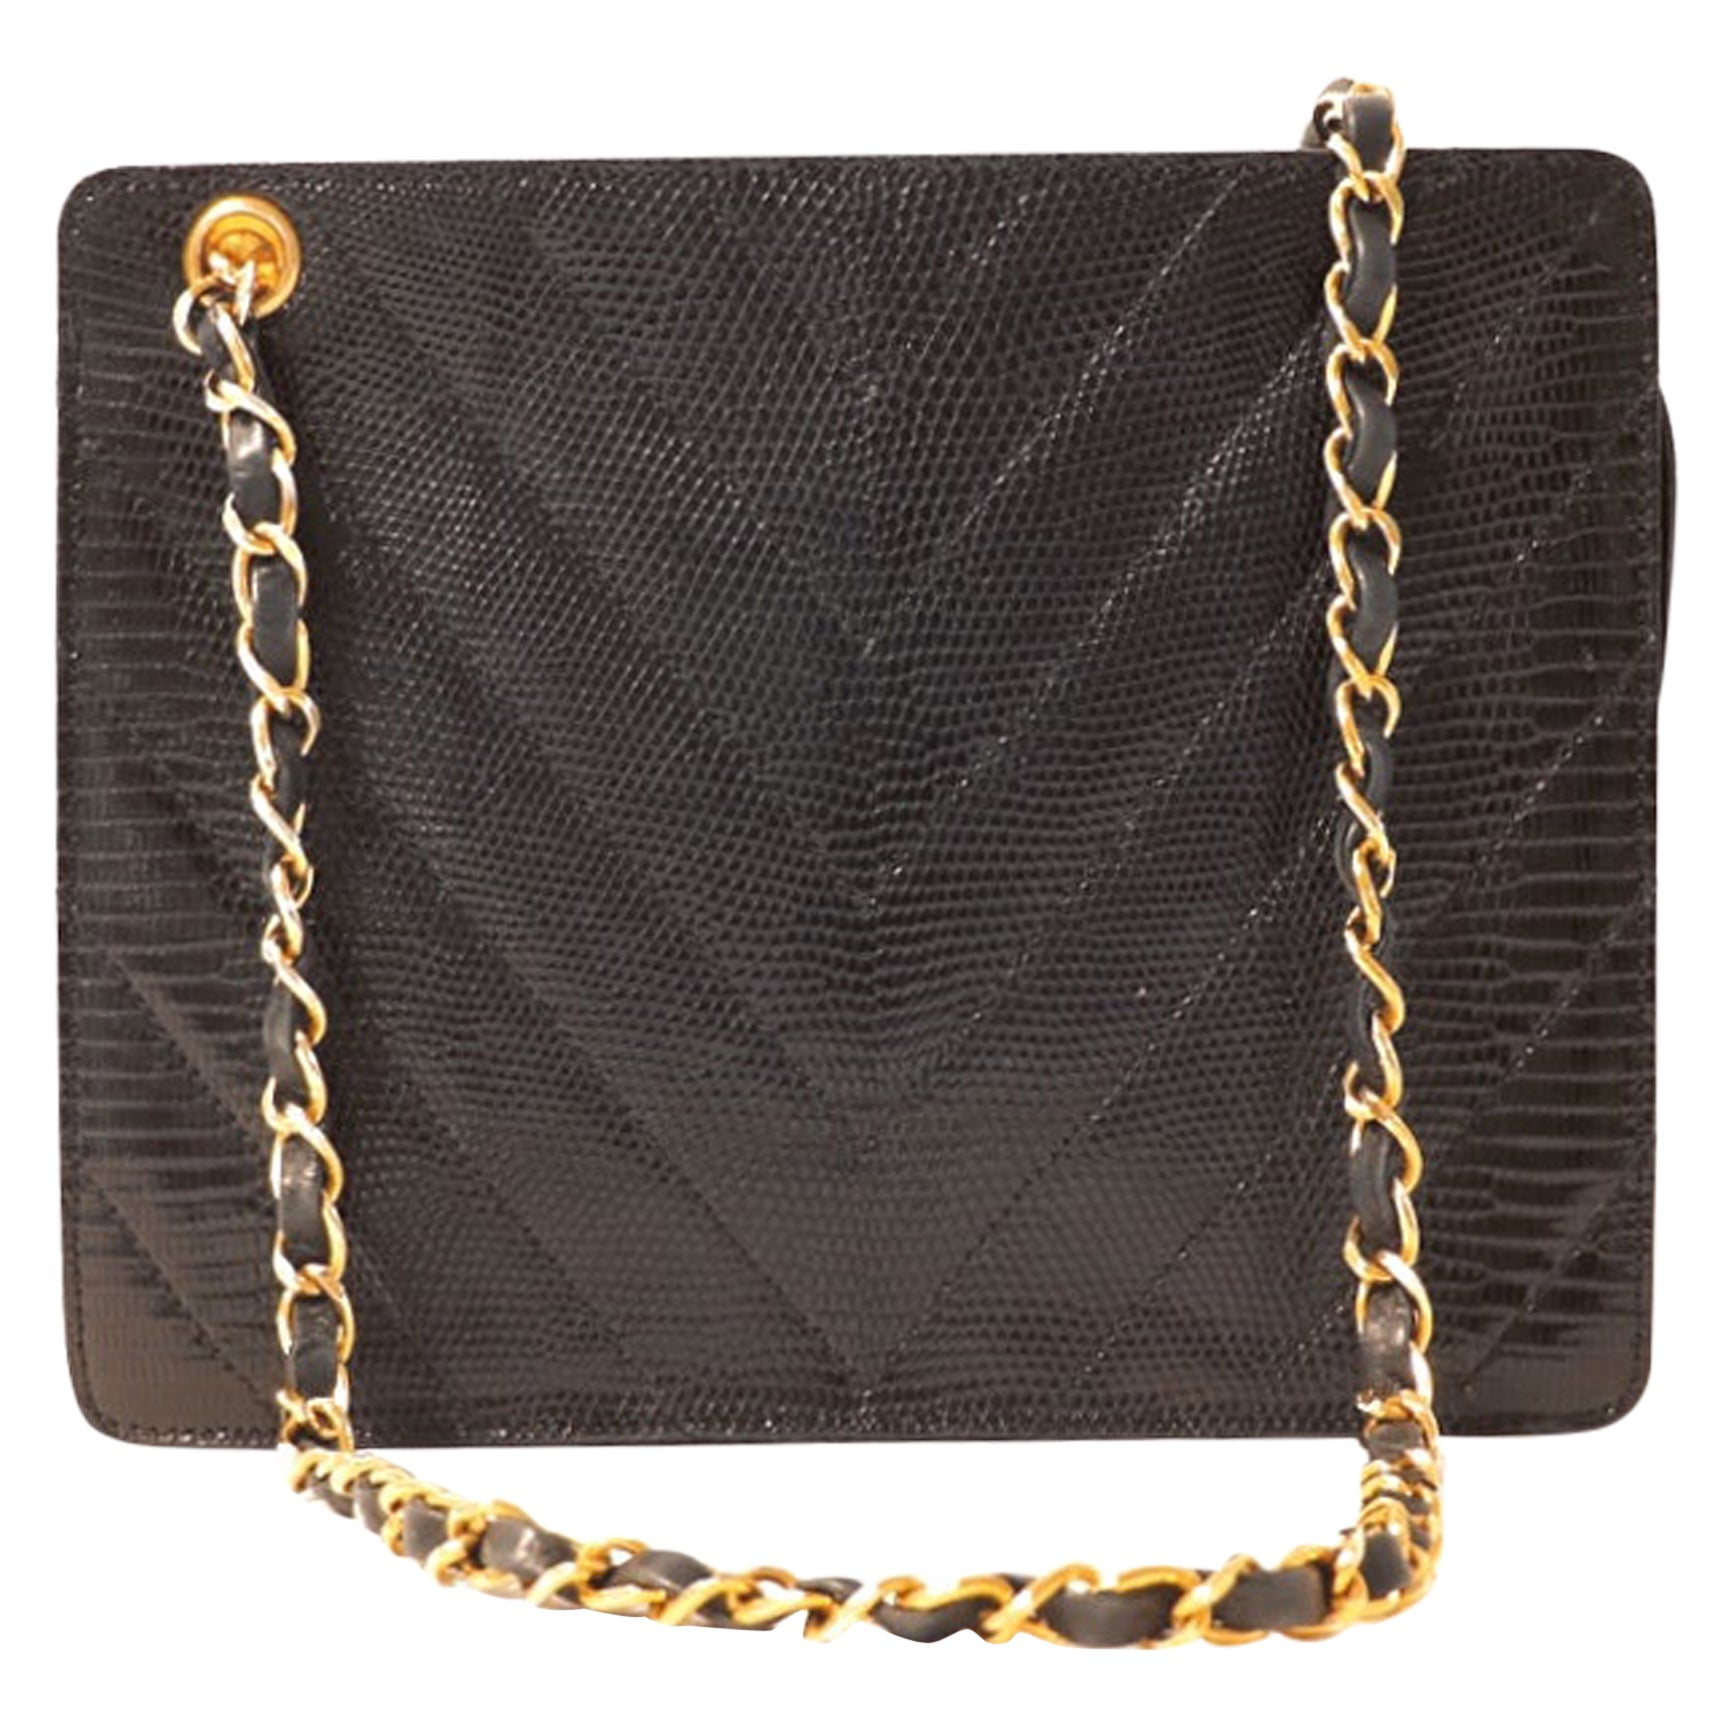 Chanel Black Lizard Chevron Vintage Bag